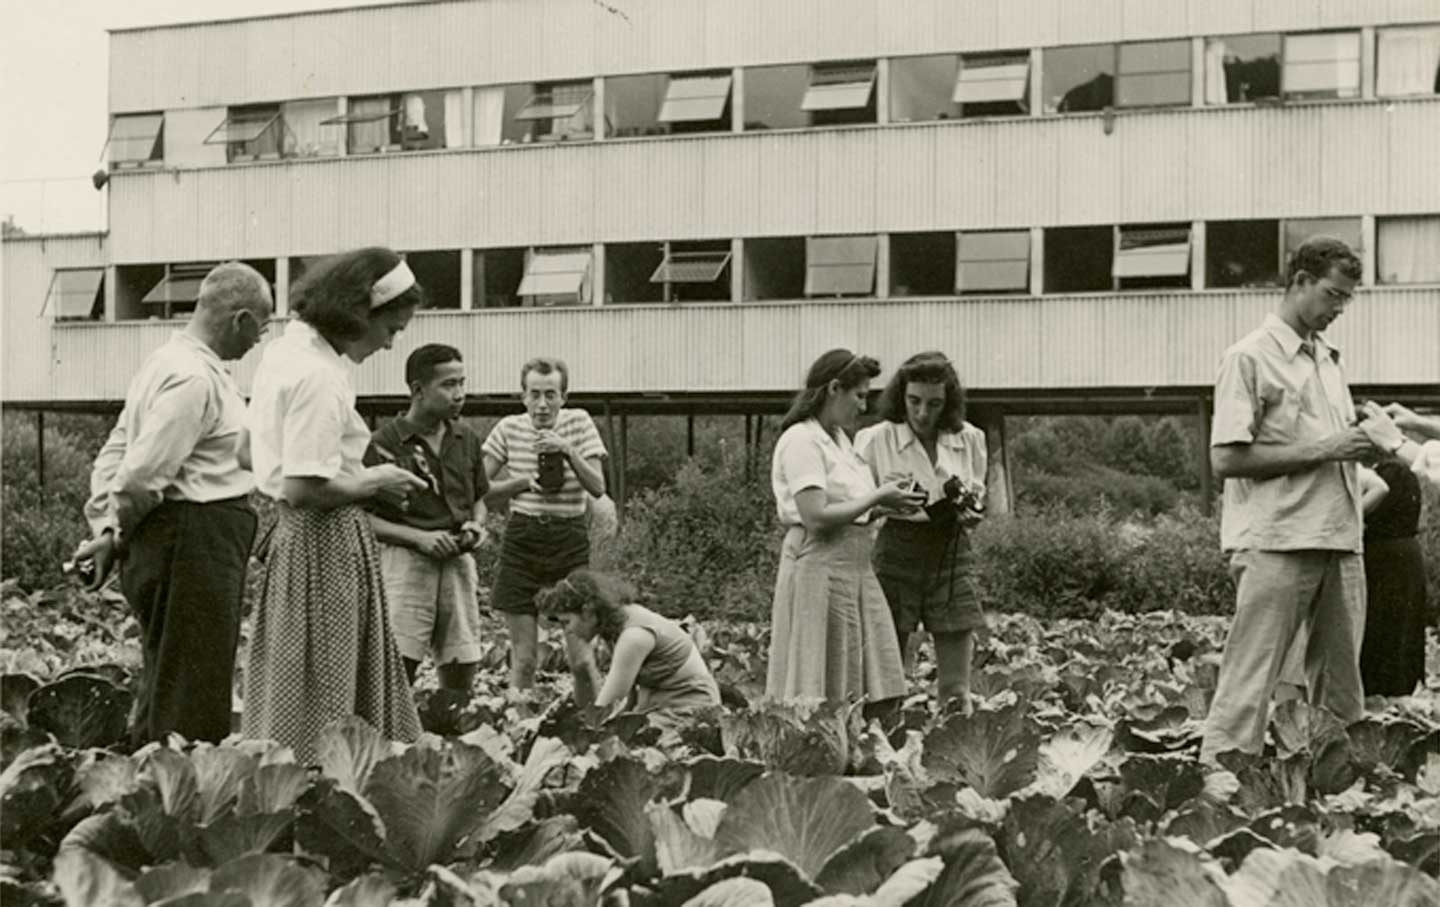 A photography class in a cabbage patch at Black Mountain College.